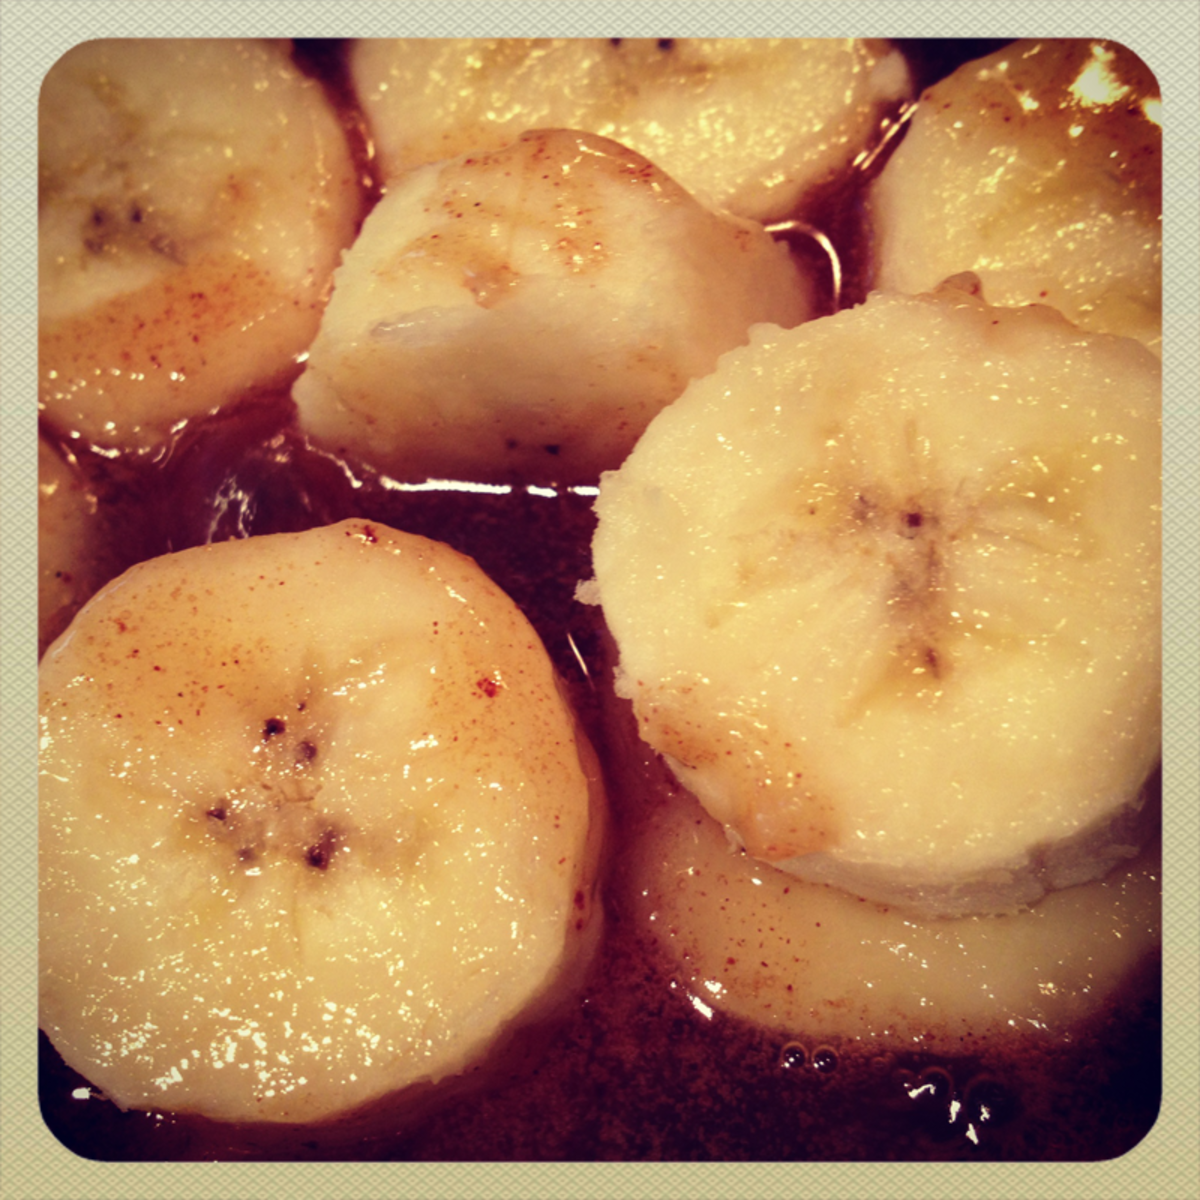 Cut bananas length-wise if they are the star of the show.  Slice them into pieces if they'll be used as a topping.